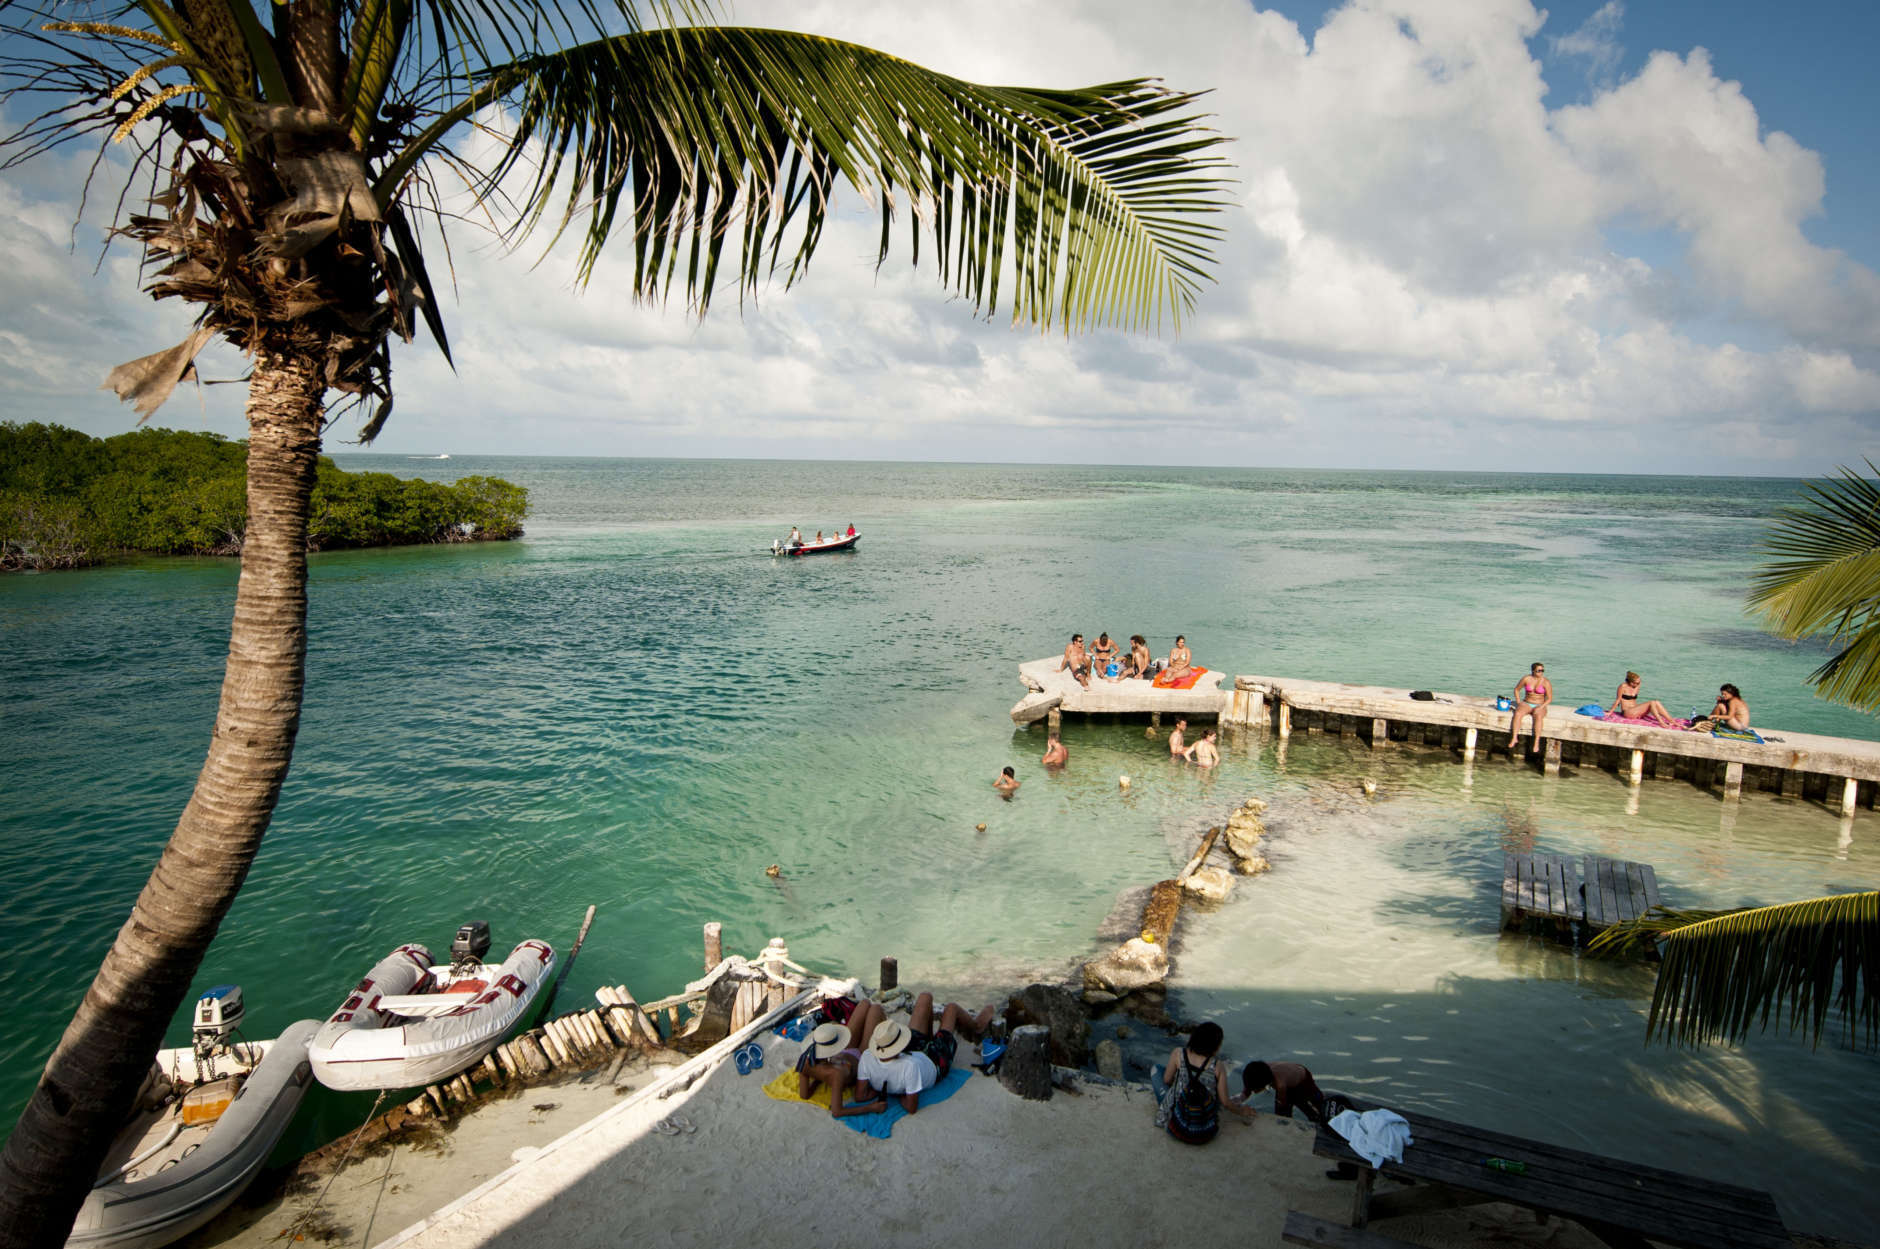 This undated photo provided by The Belize Tourism Board shows vacationers relaxing at Caye Caulker, Belize. The beach town is a laid-back, low-cost base for tourists looking to explore a nearby barrier reef. (AP Photo/The Belize Tourist Board)